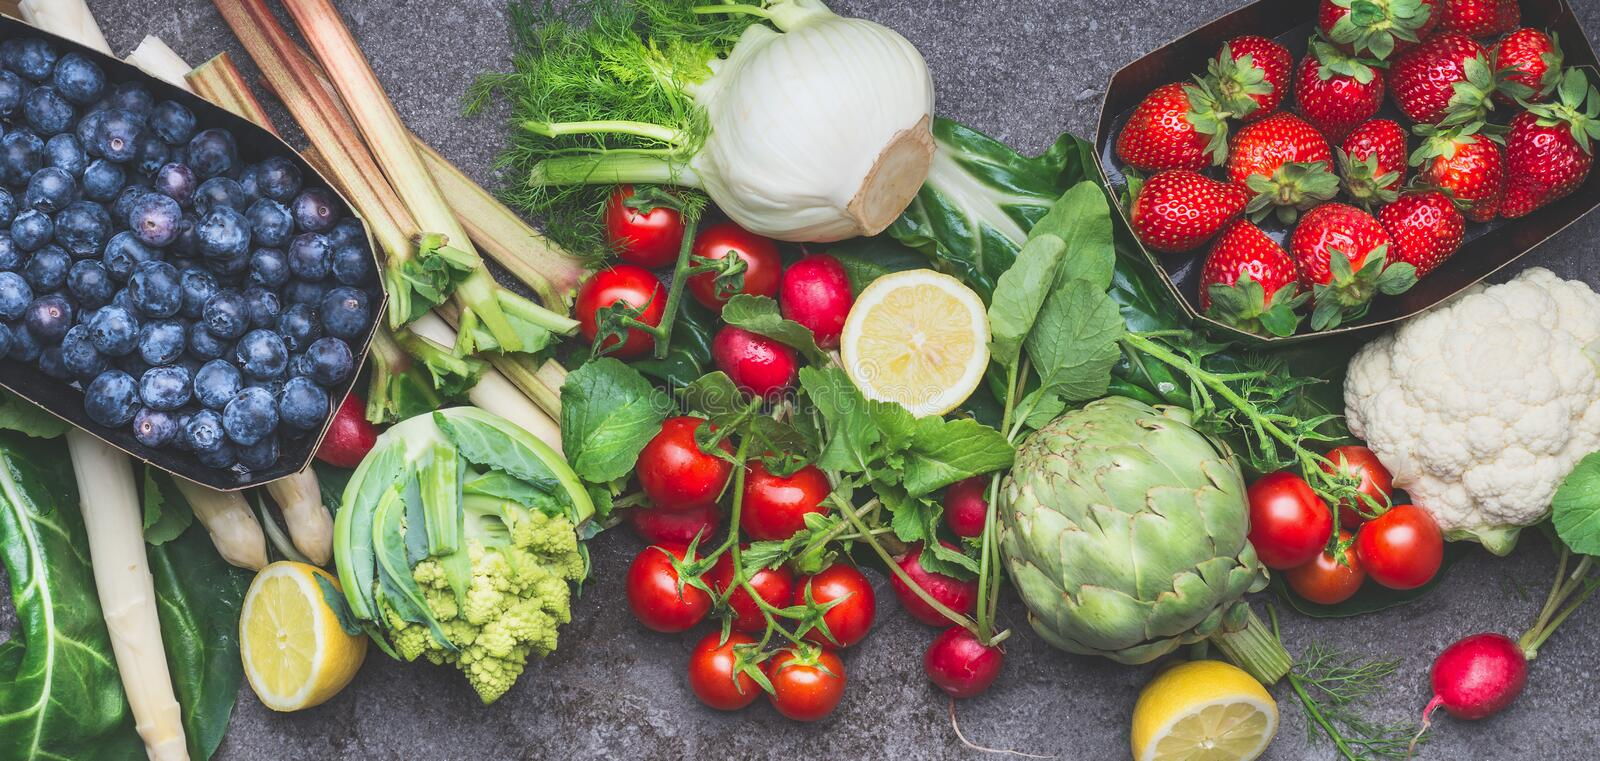 Various organic vegetables, fruits and berries for healthy, clean , vegetarian or diet eating stock images